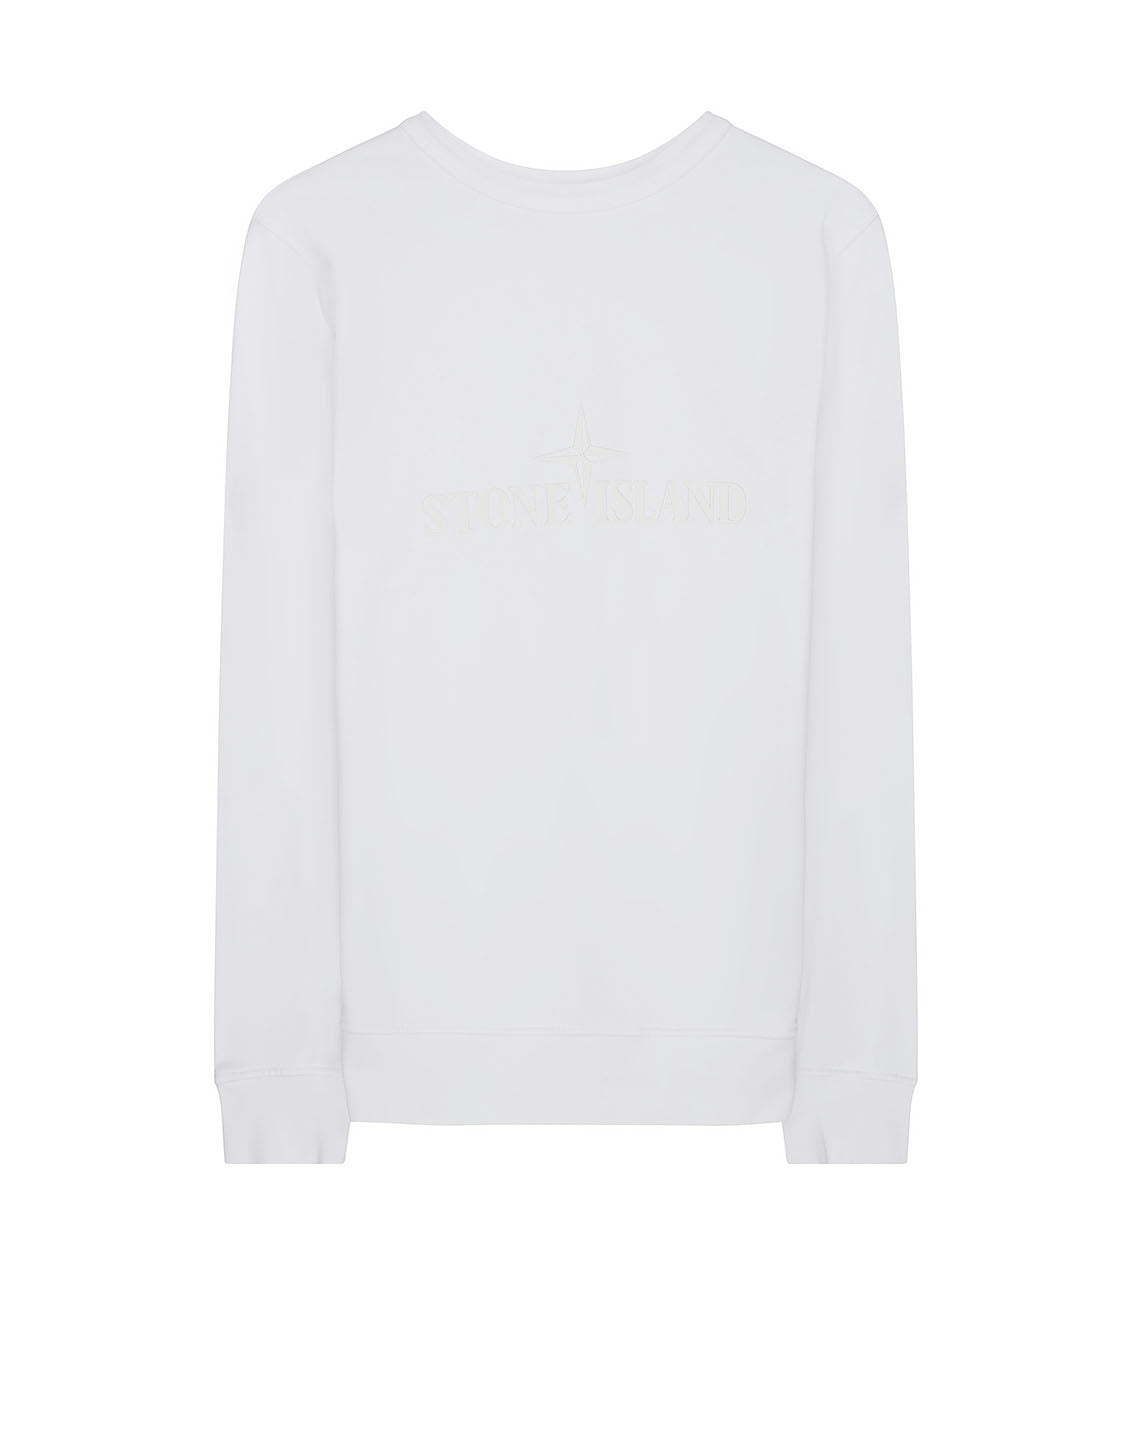 60151 Crewneck Fleece Sweatshirt in White